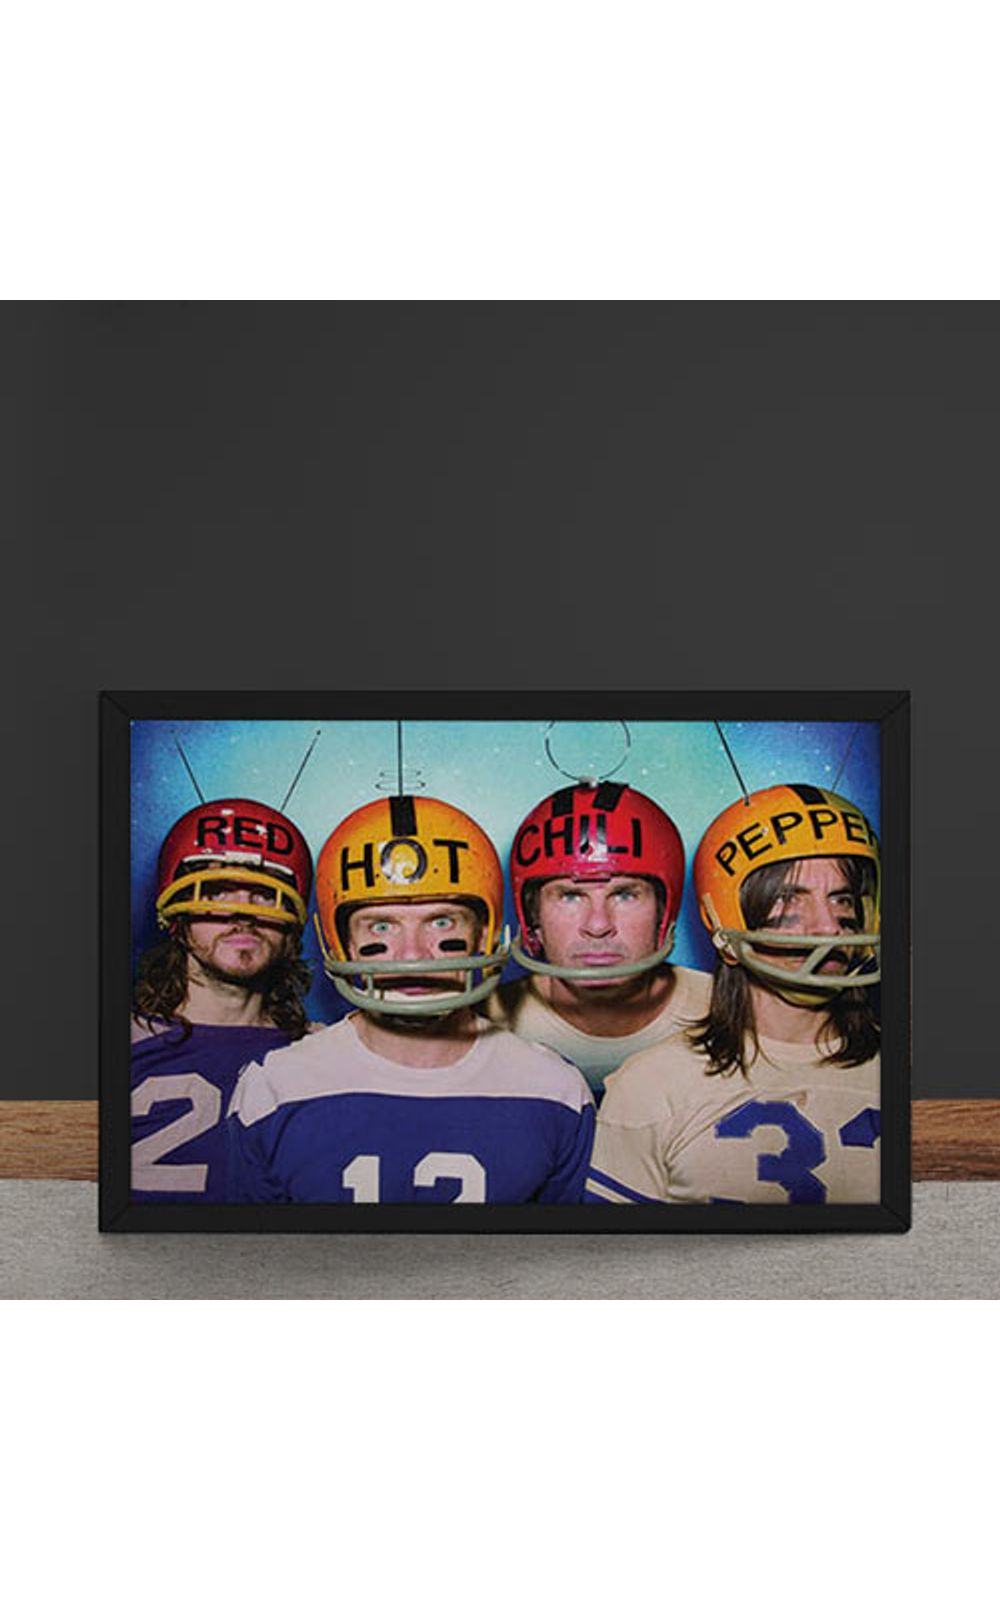 Foto 4 - Quadro Decorativo Red Hot Chili Peppers Futebol Americano